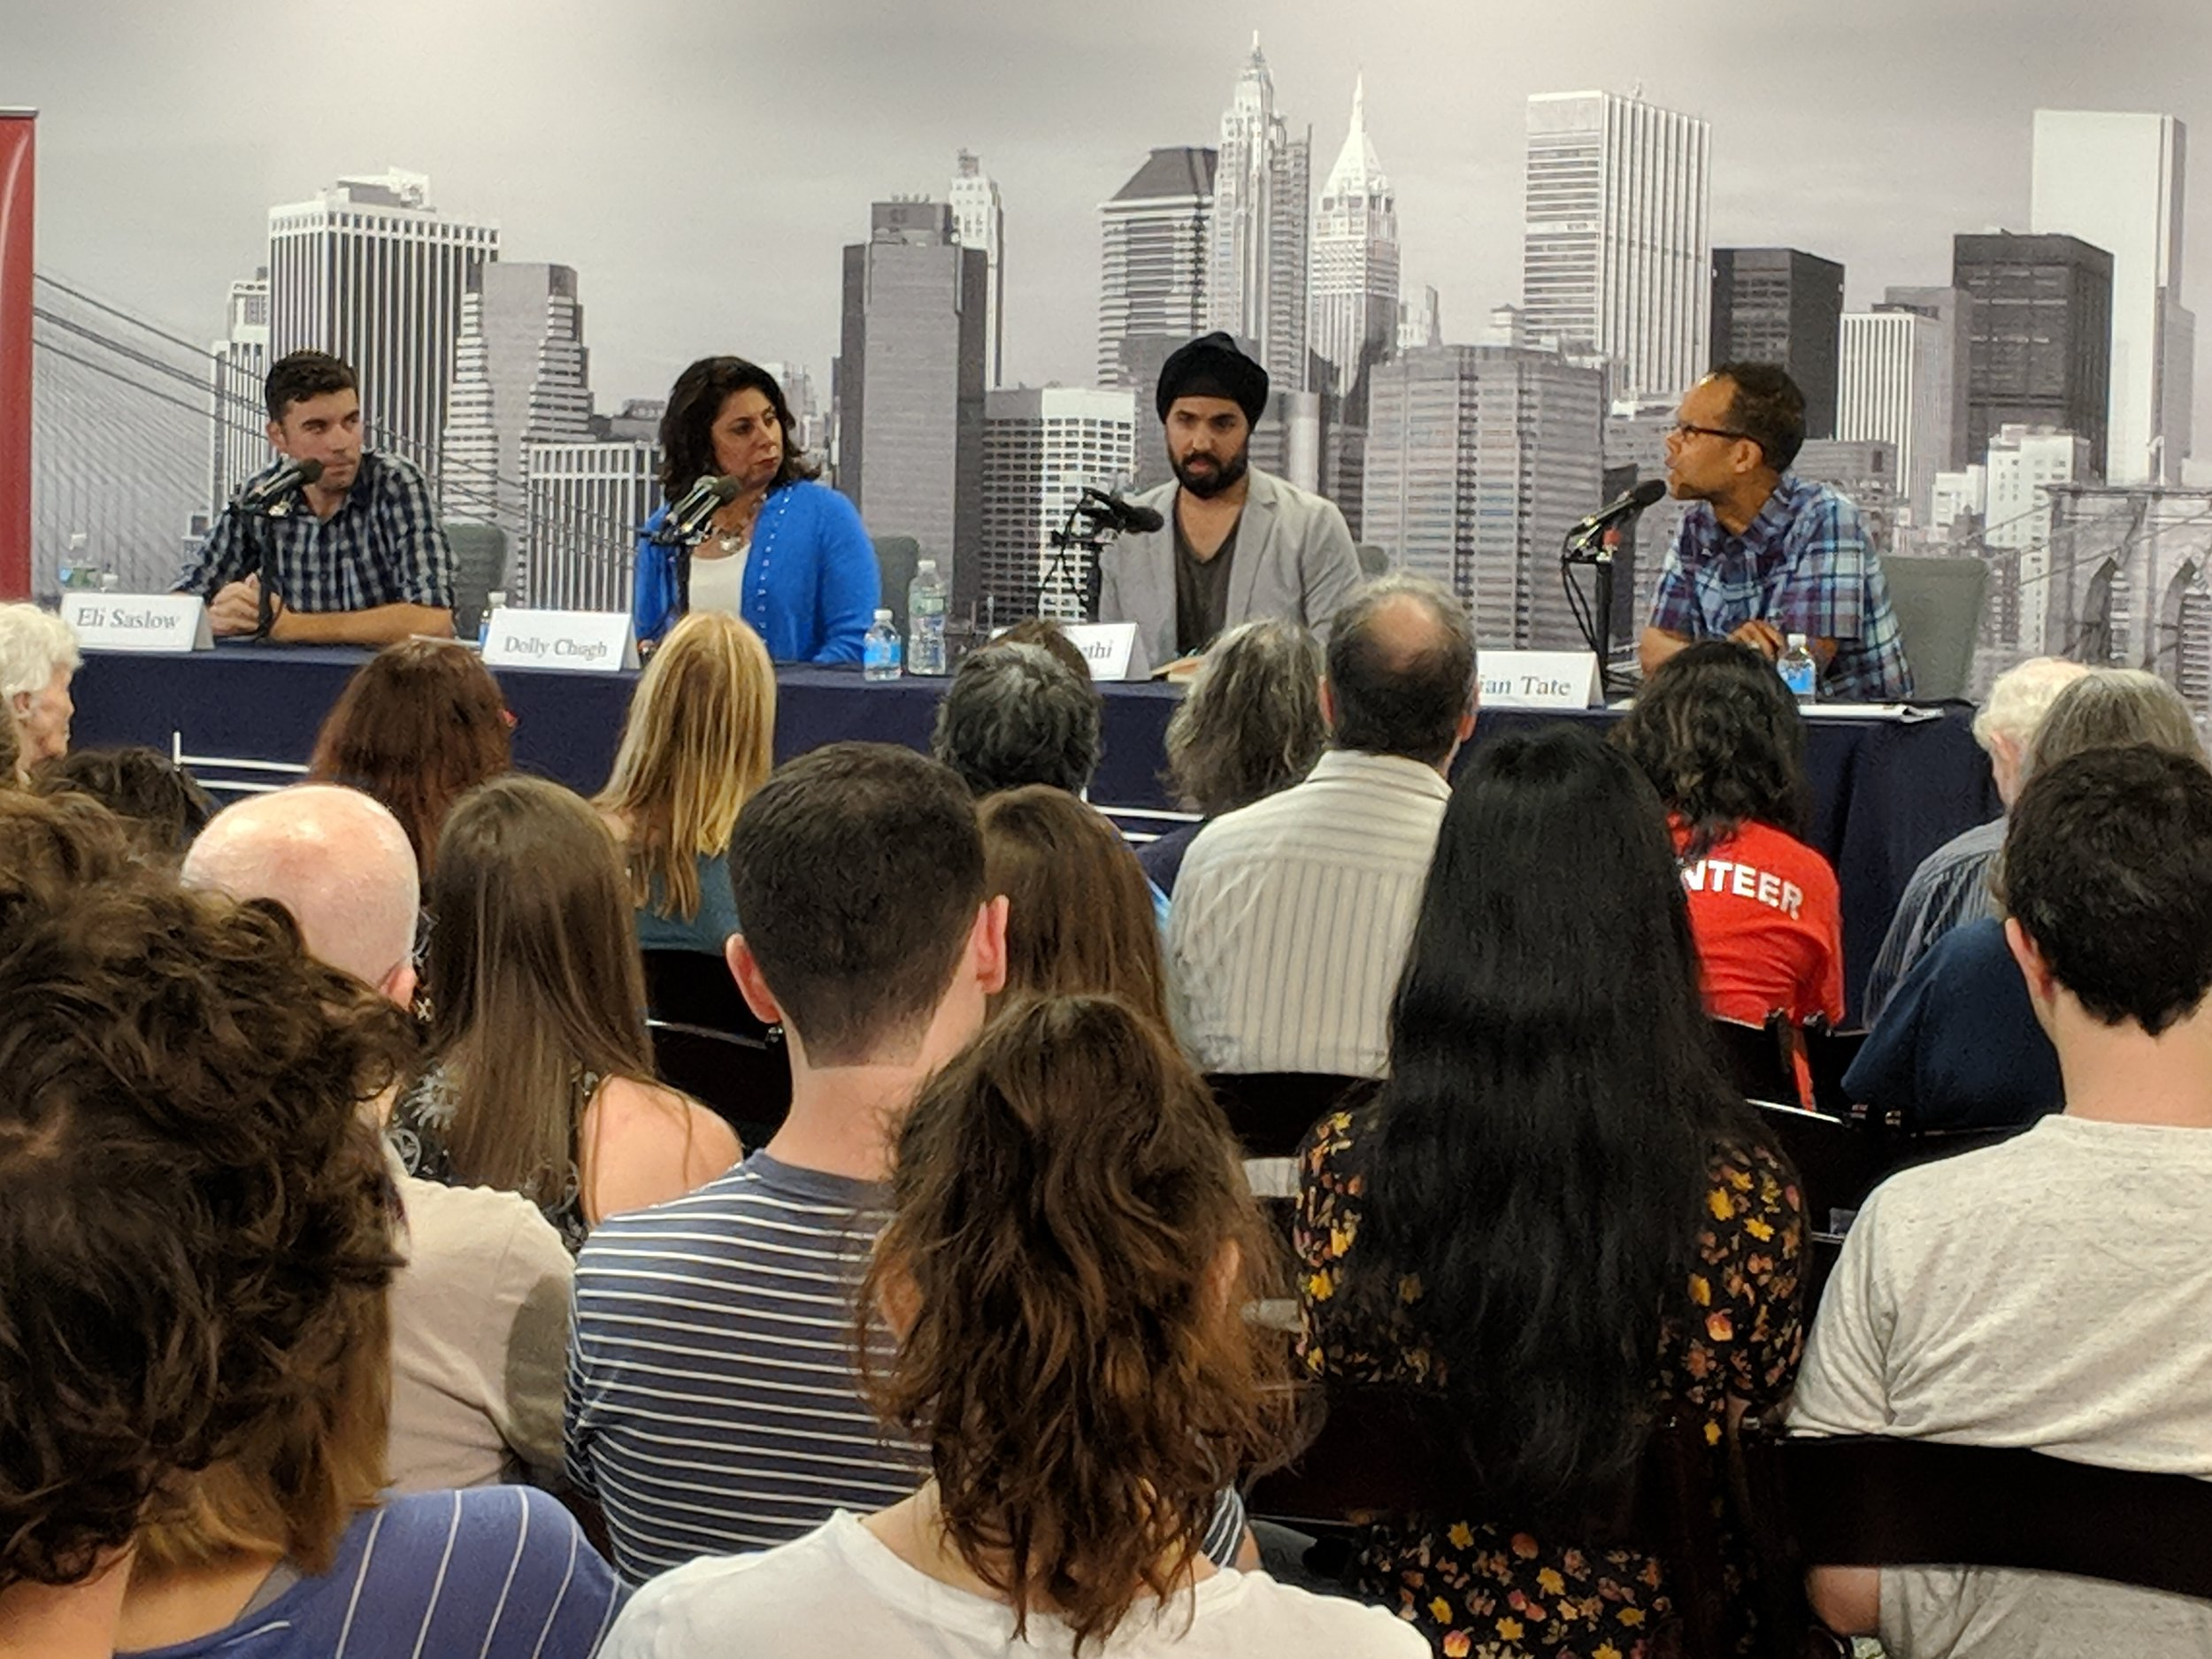 Arjun Sethi at the Brooklyn Book Festival's panel on Hate.